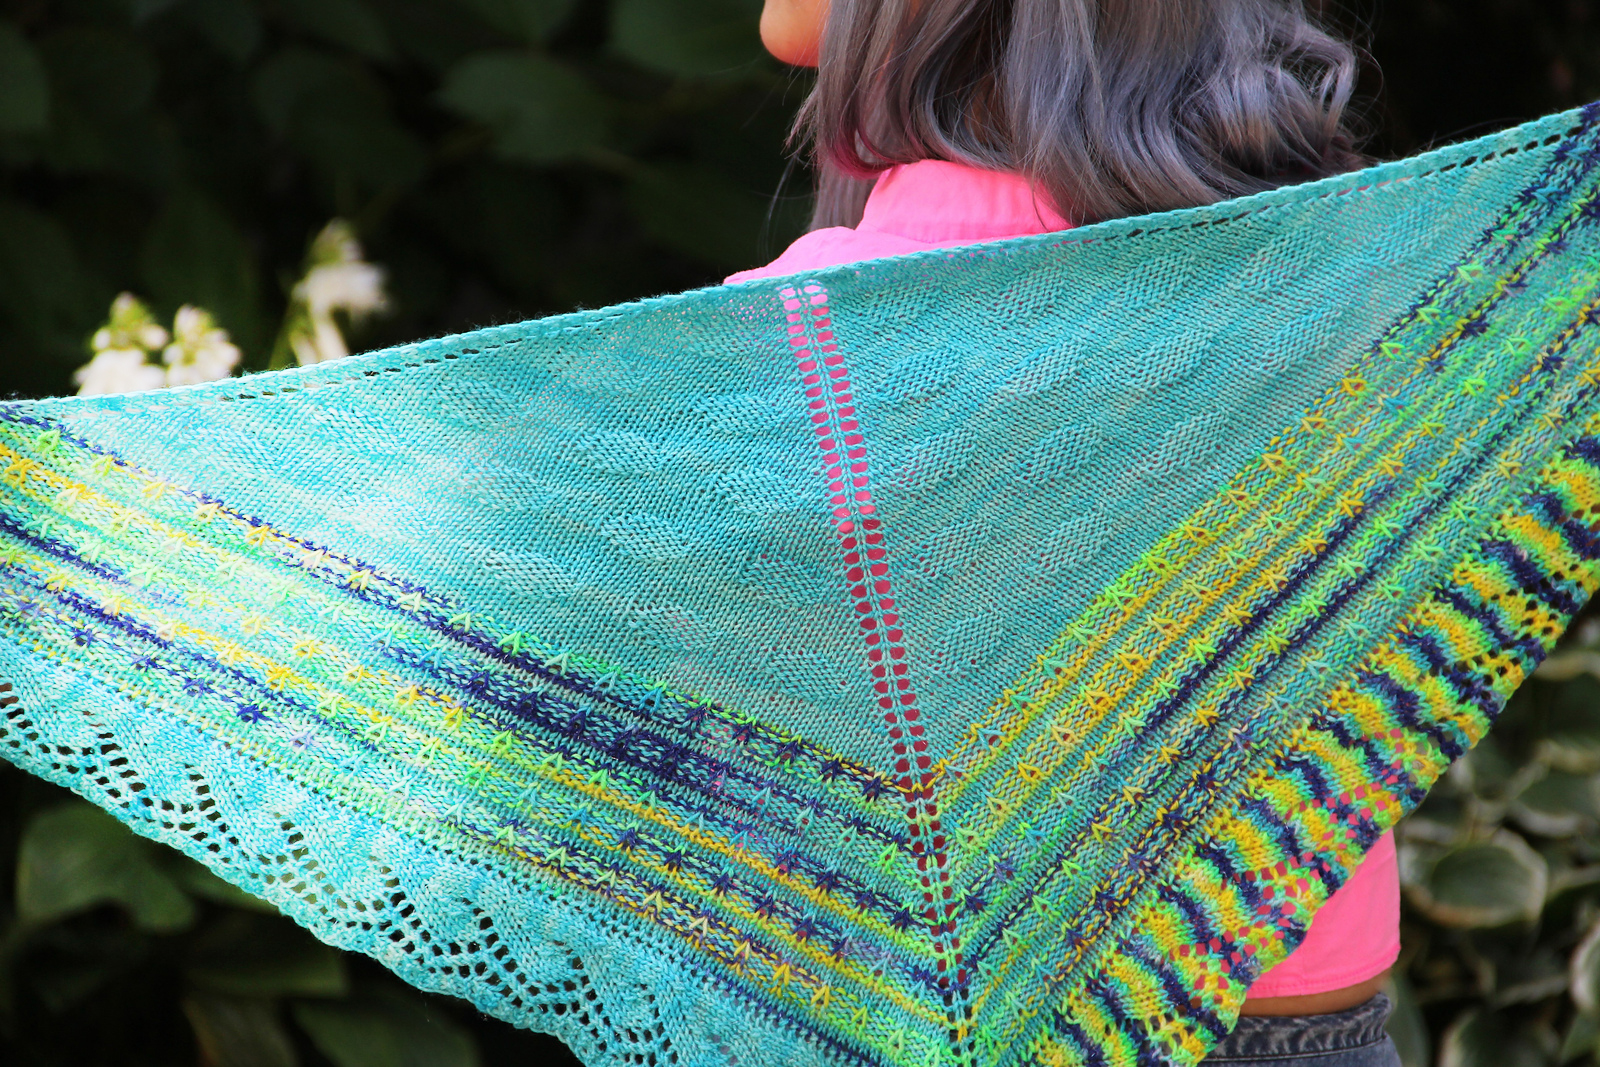 NORICHAN KNITSThe Sticker Book Shawl - Grab this pattern from @norichan knits.  A top-down triangular shawl,we imagine using stash or celebrating a special skein of wild colors. You choose; it's a great pattern that will never get boring.$7.00